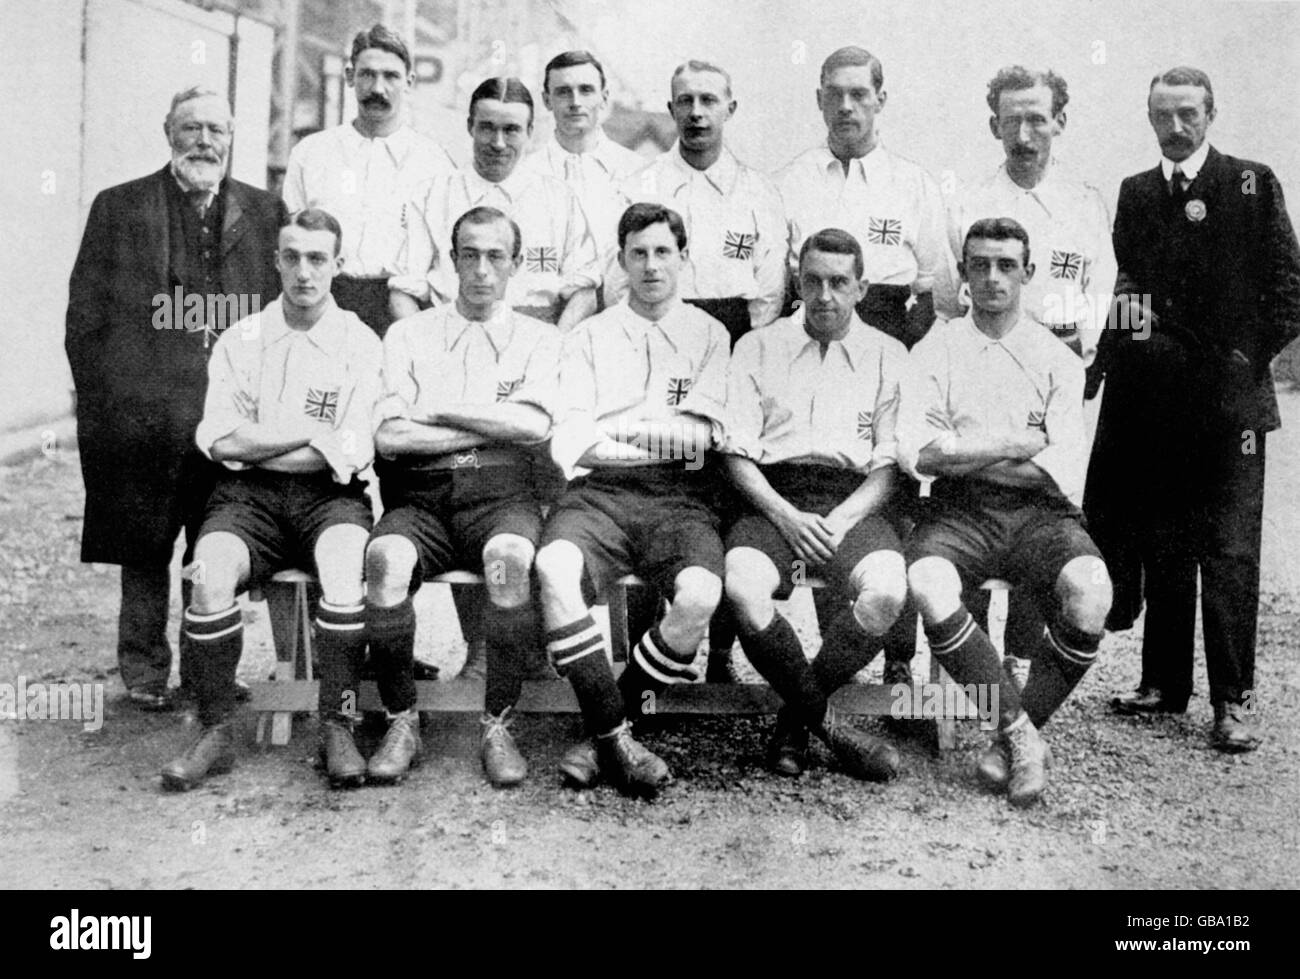 Soccer - London Olympic Games 1908 - Stock Image